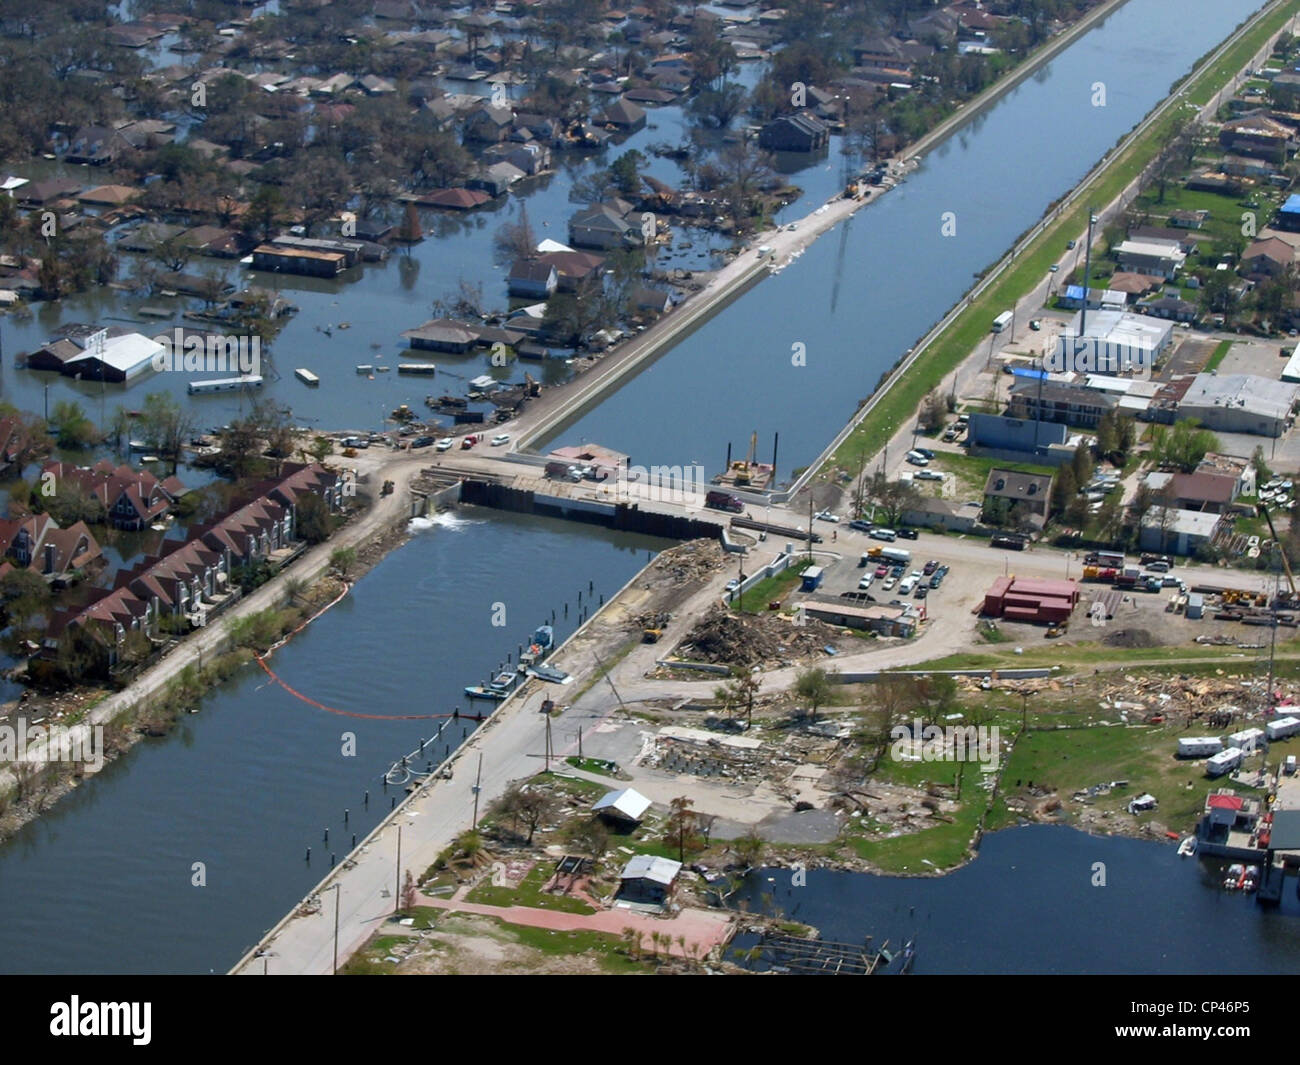 hurricane katrina and the levee system It's these vulnerabilities that keep engineers from describing the levee system as full protection — indeed its official name is the hurricane & storm damage risk reduction system.